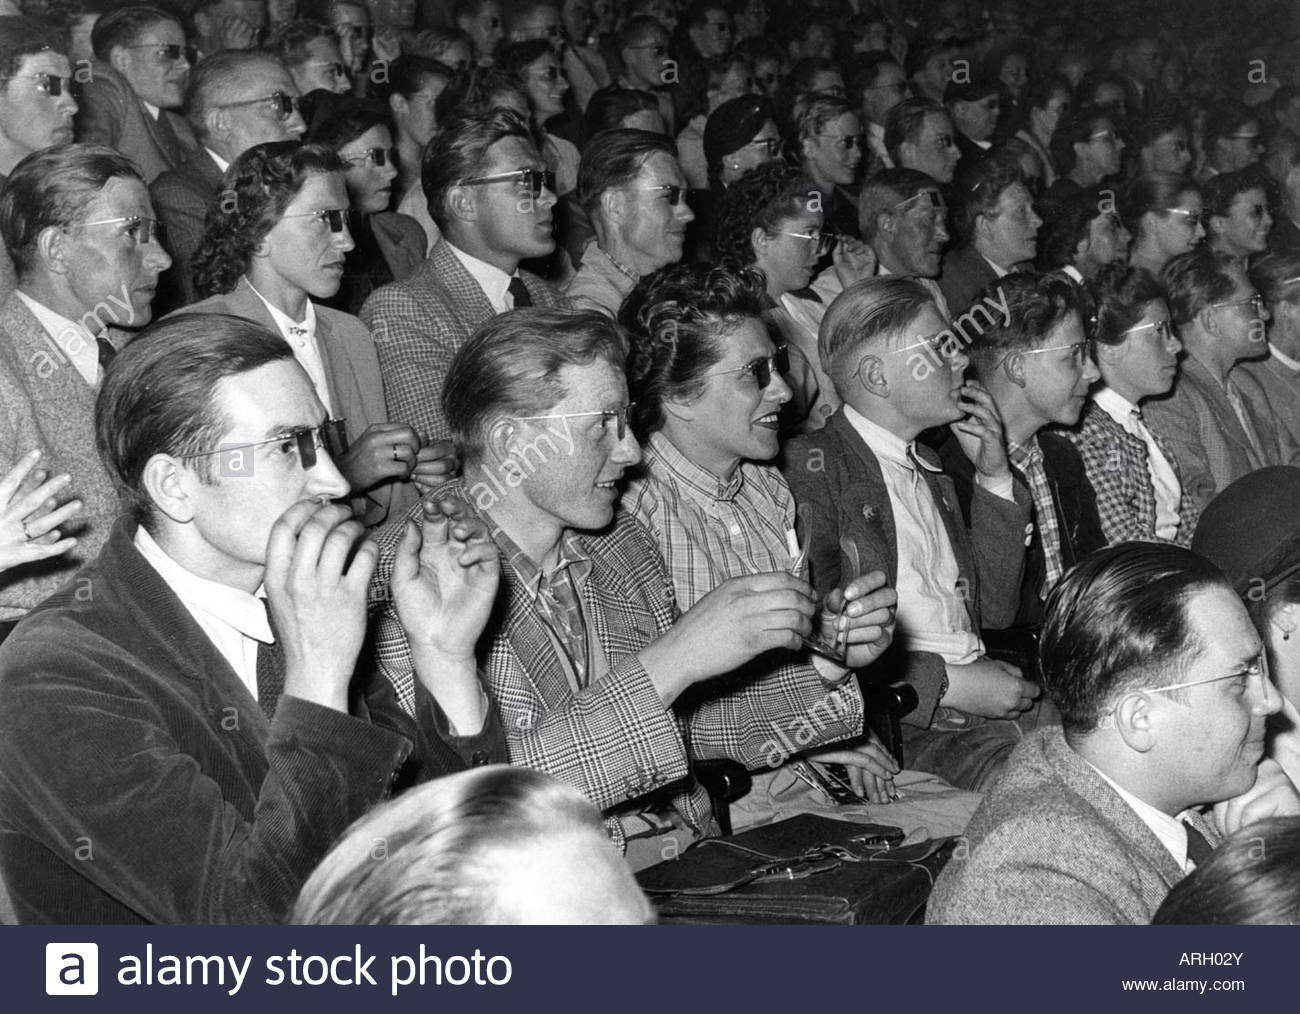 cinema, first performance of 3-D movie, onlookers with 3-D spectacles, 1950s, Additional-Rights-Clearances-NA - Stock Image